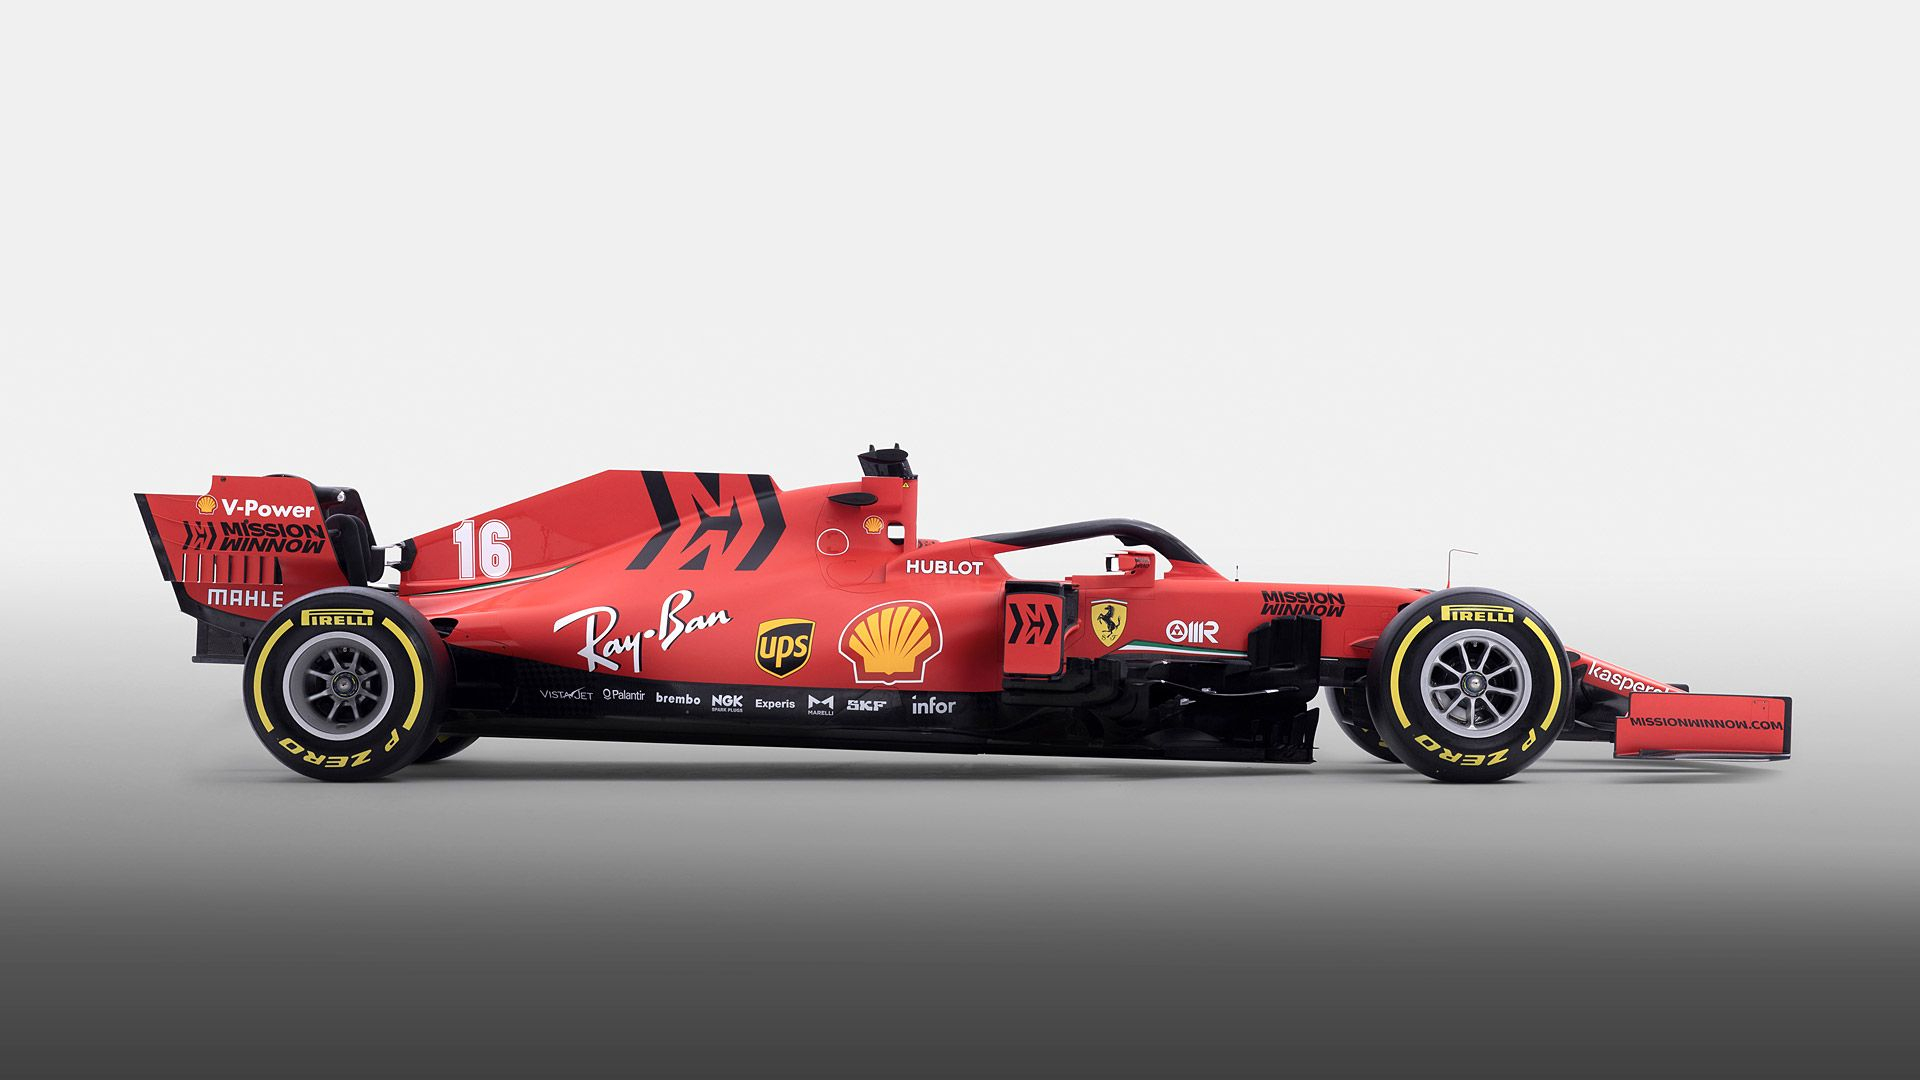 2020 Ferrari Sf1000 In 2020 Ferrari Formula 1 Car